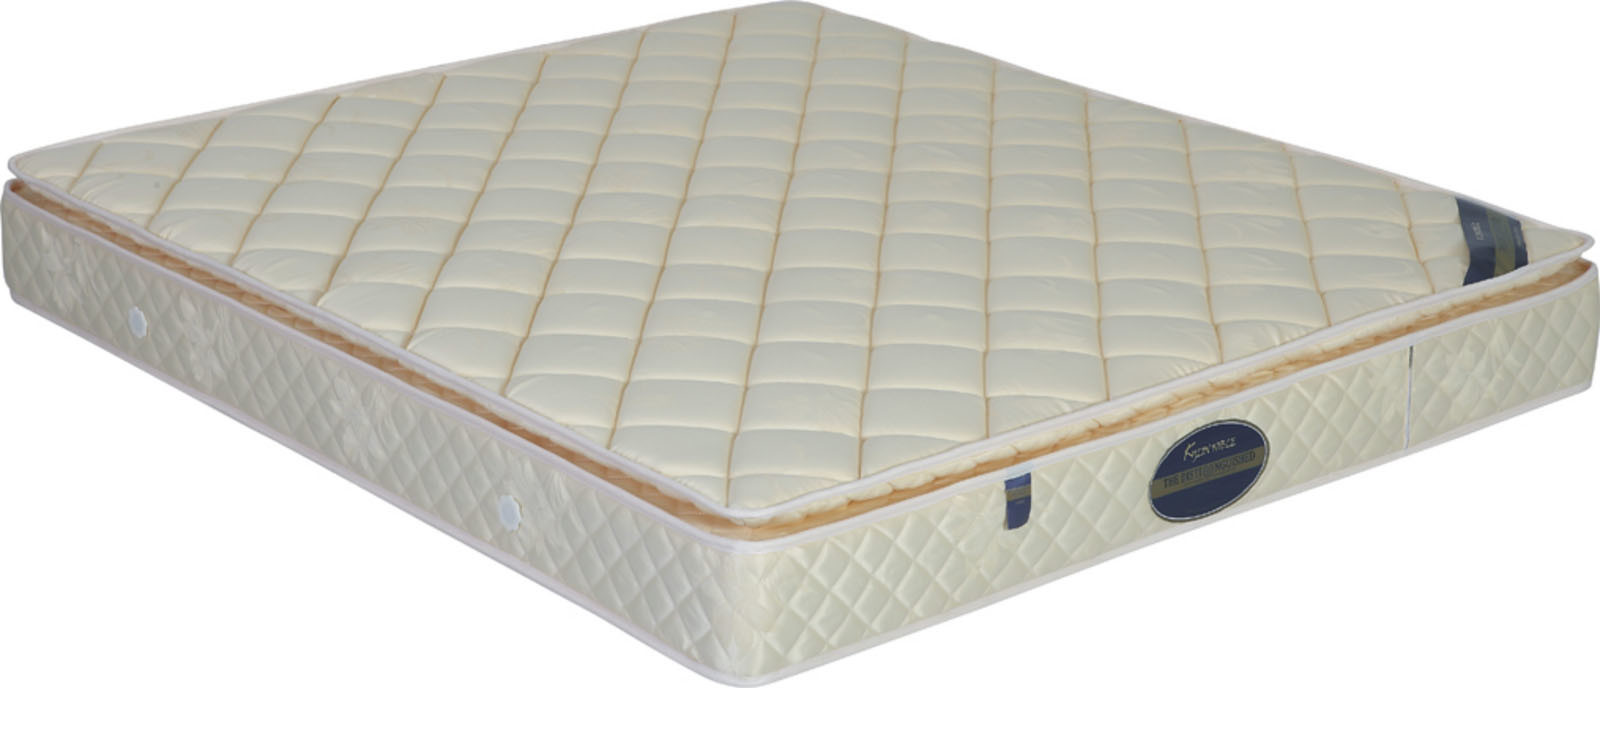 Smart Placement Sprung Mattresses Ideas Lentine Marine 28809